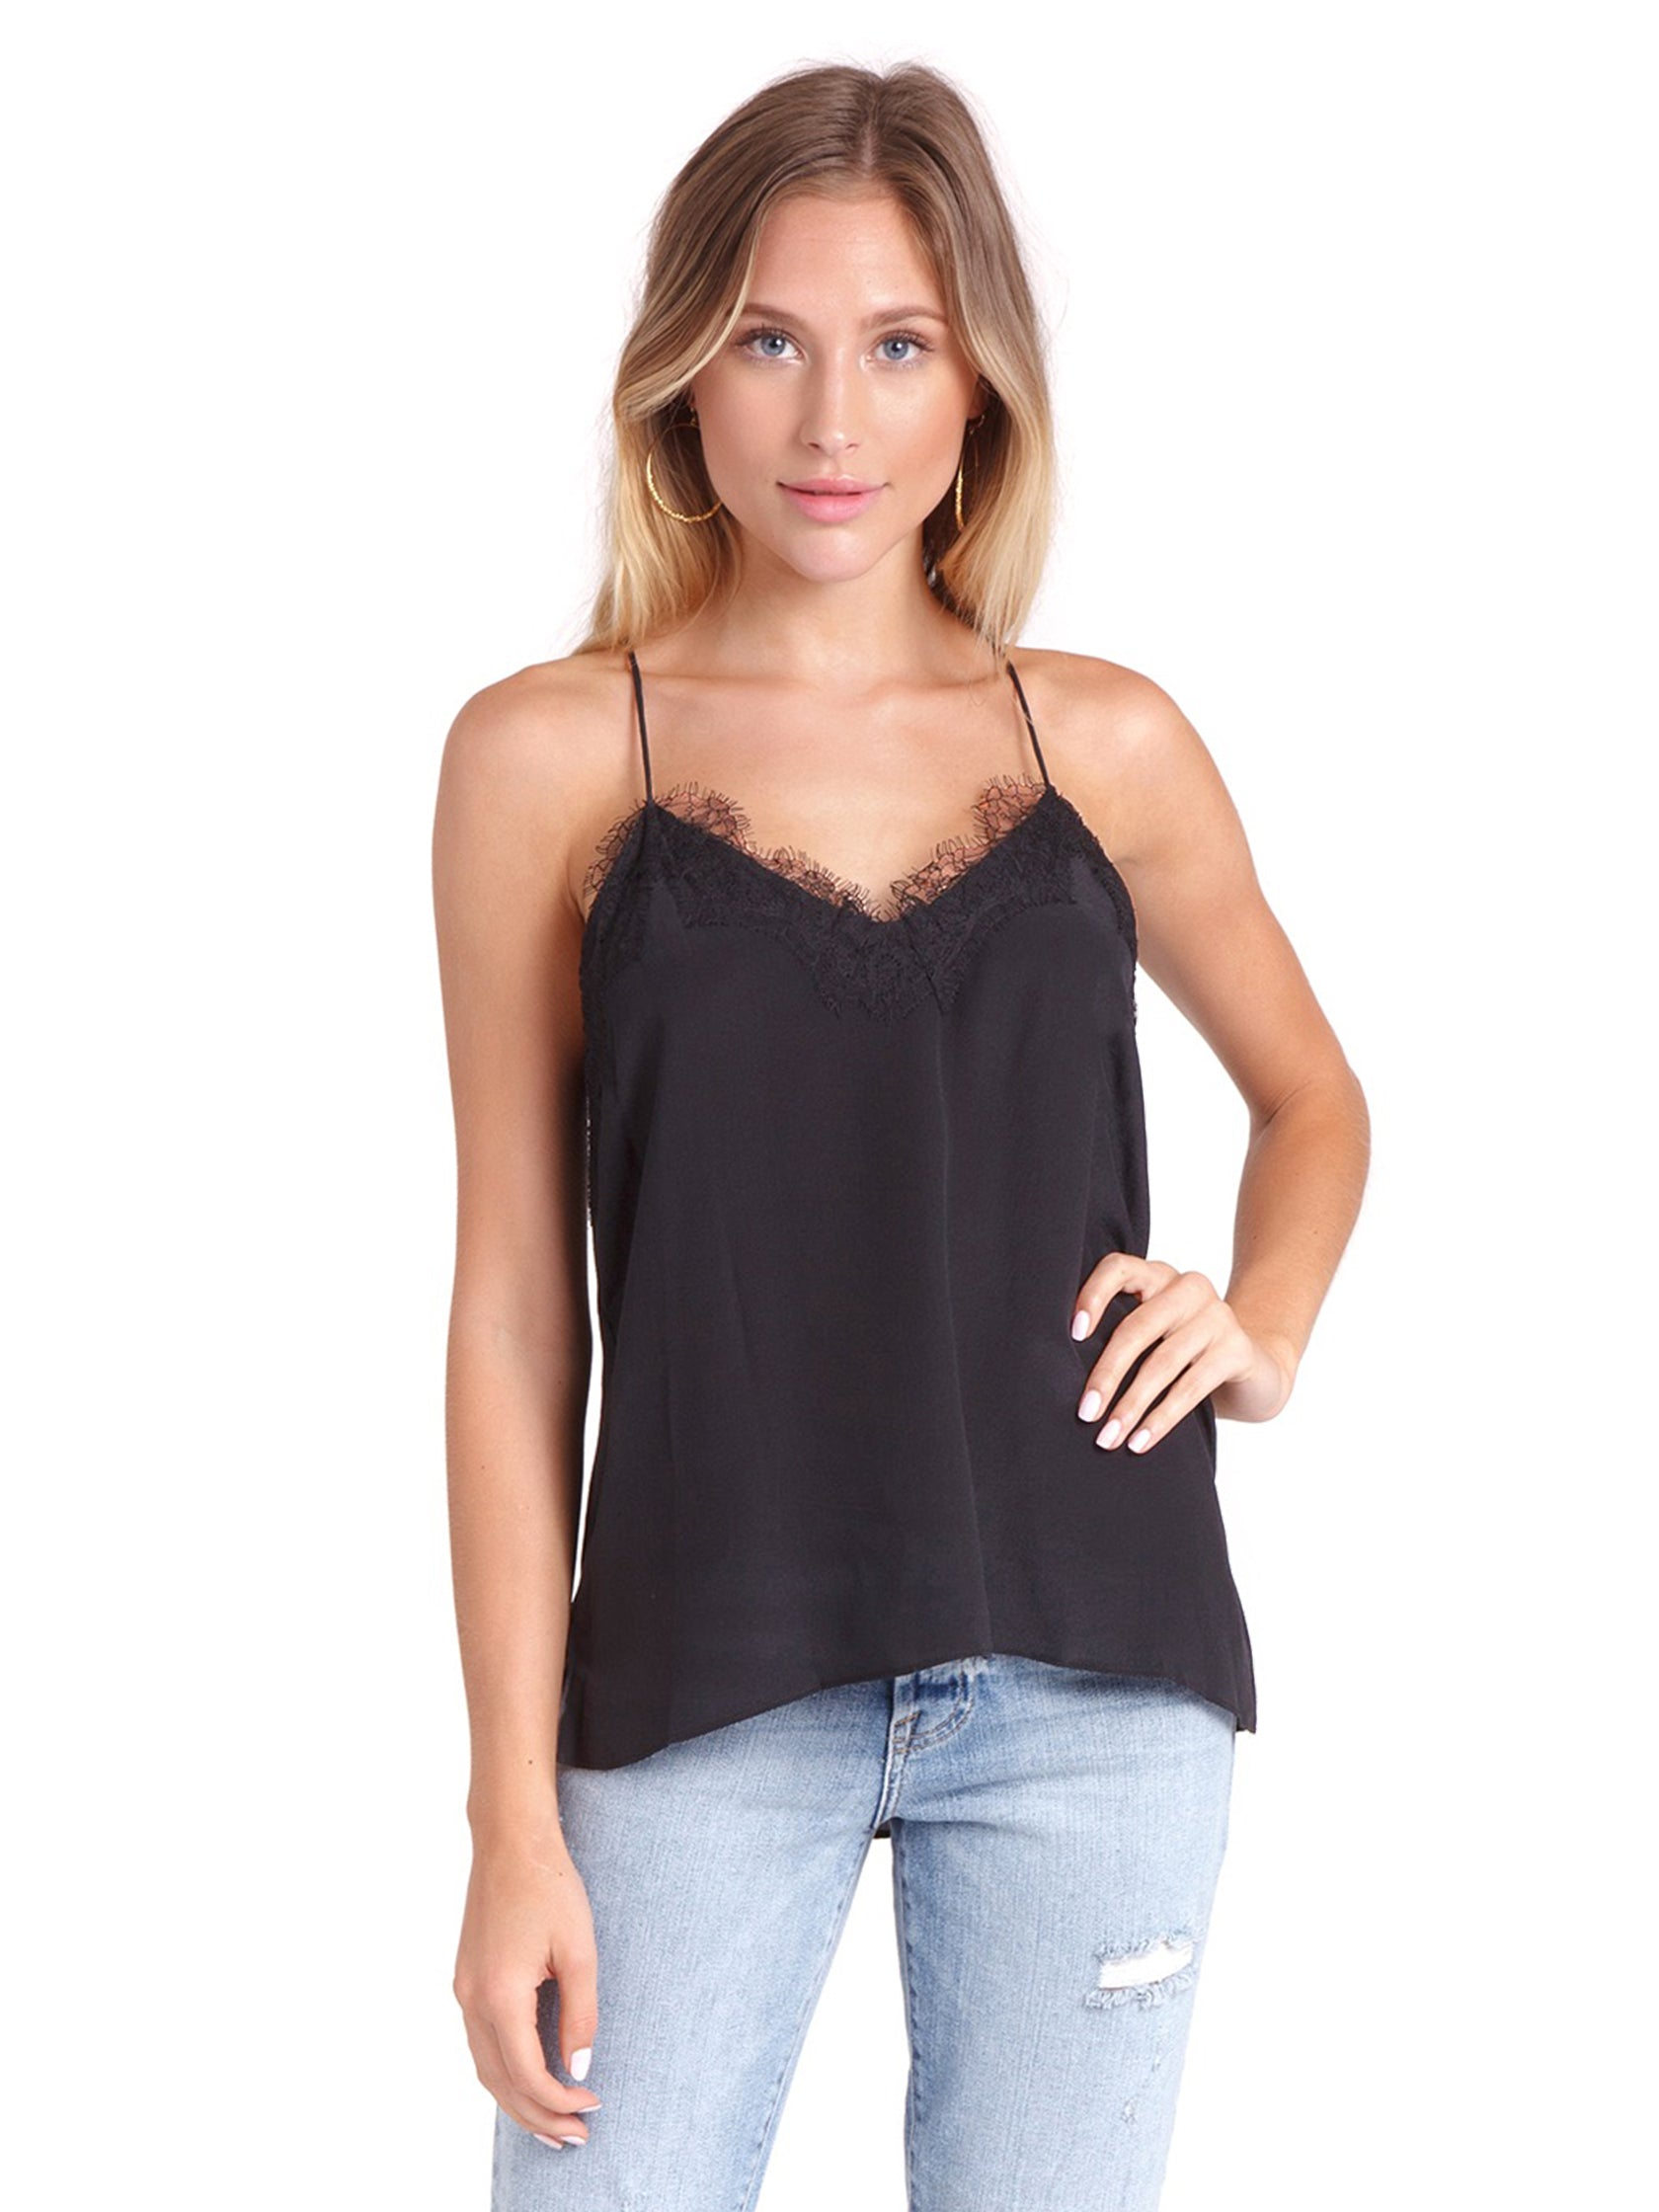 Woman wearing a cami rental from Cami NYC called The Racer Cami